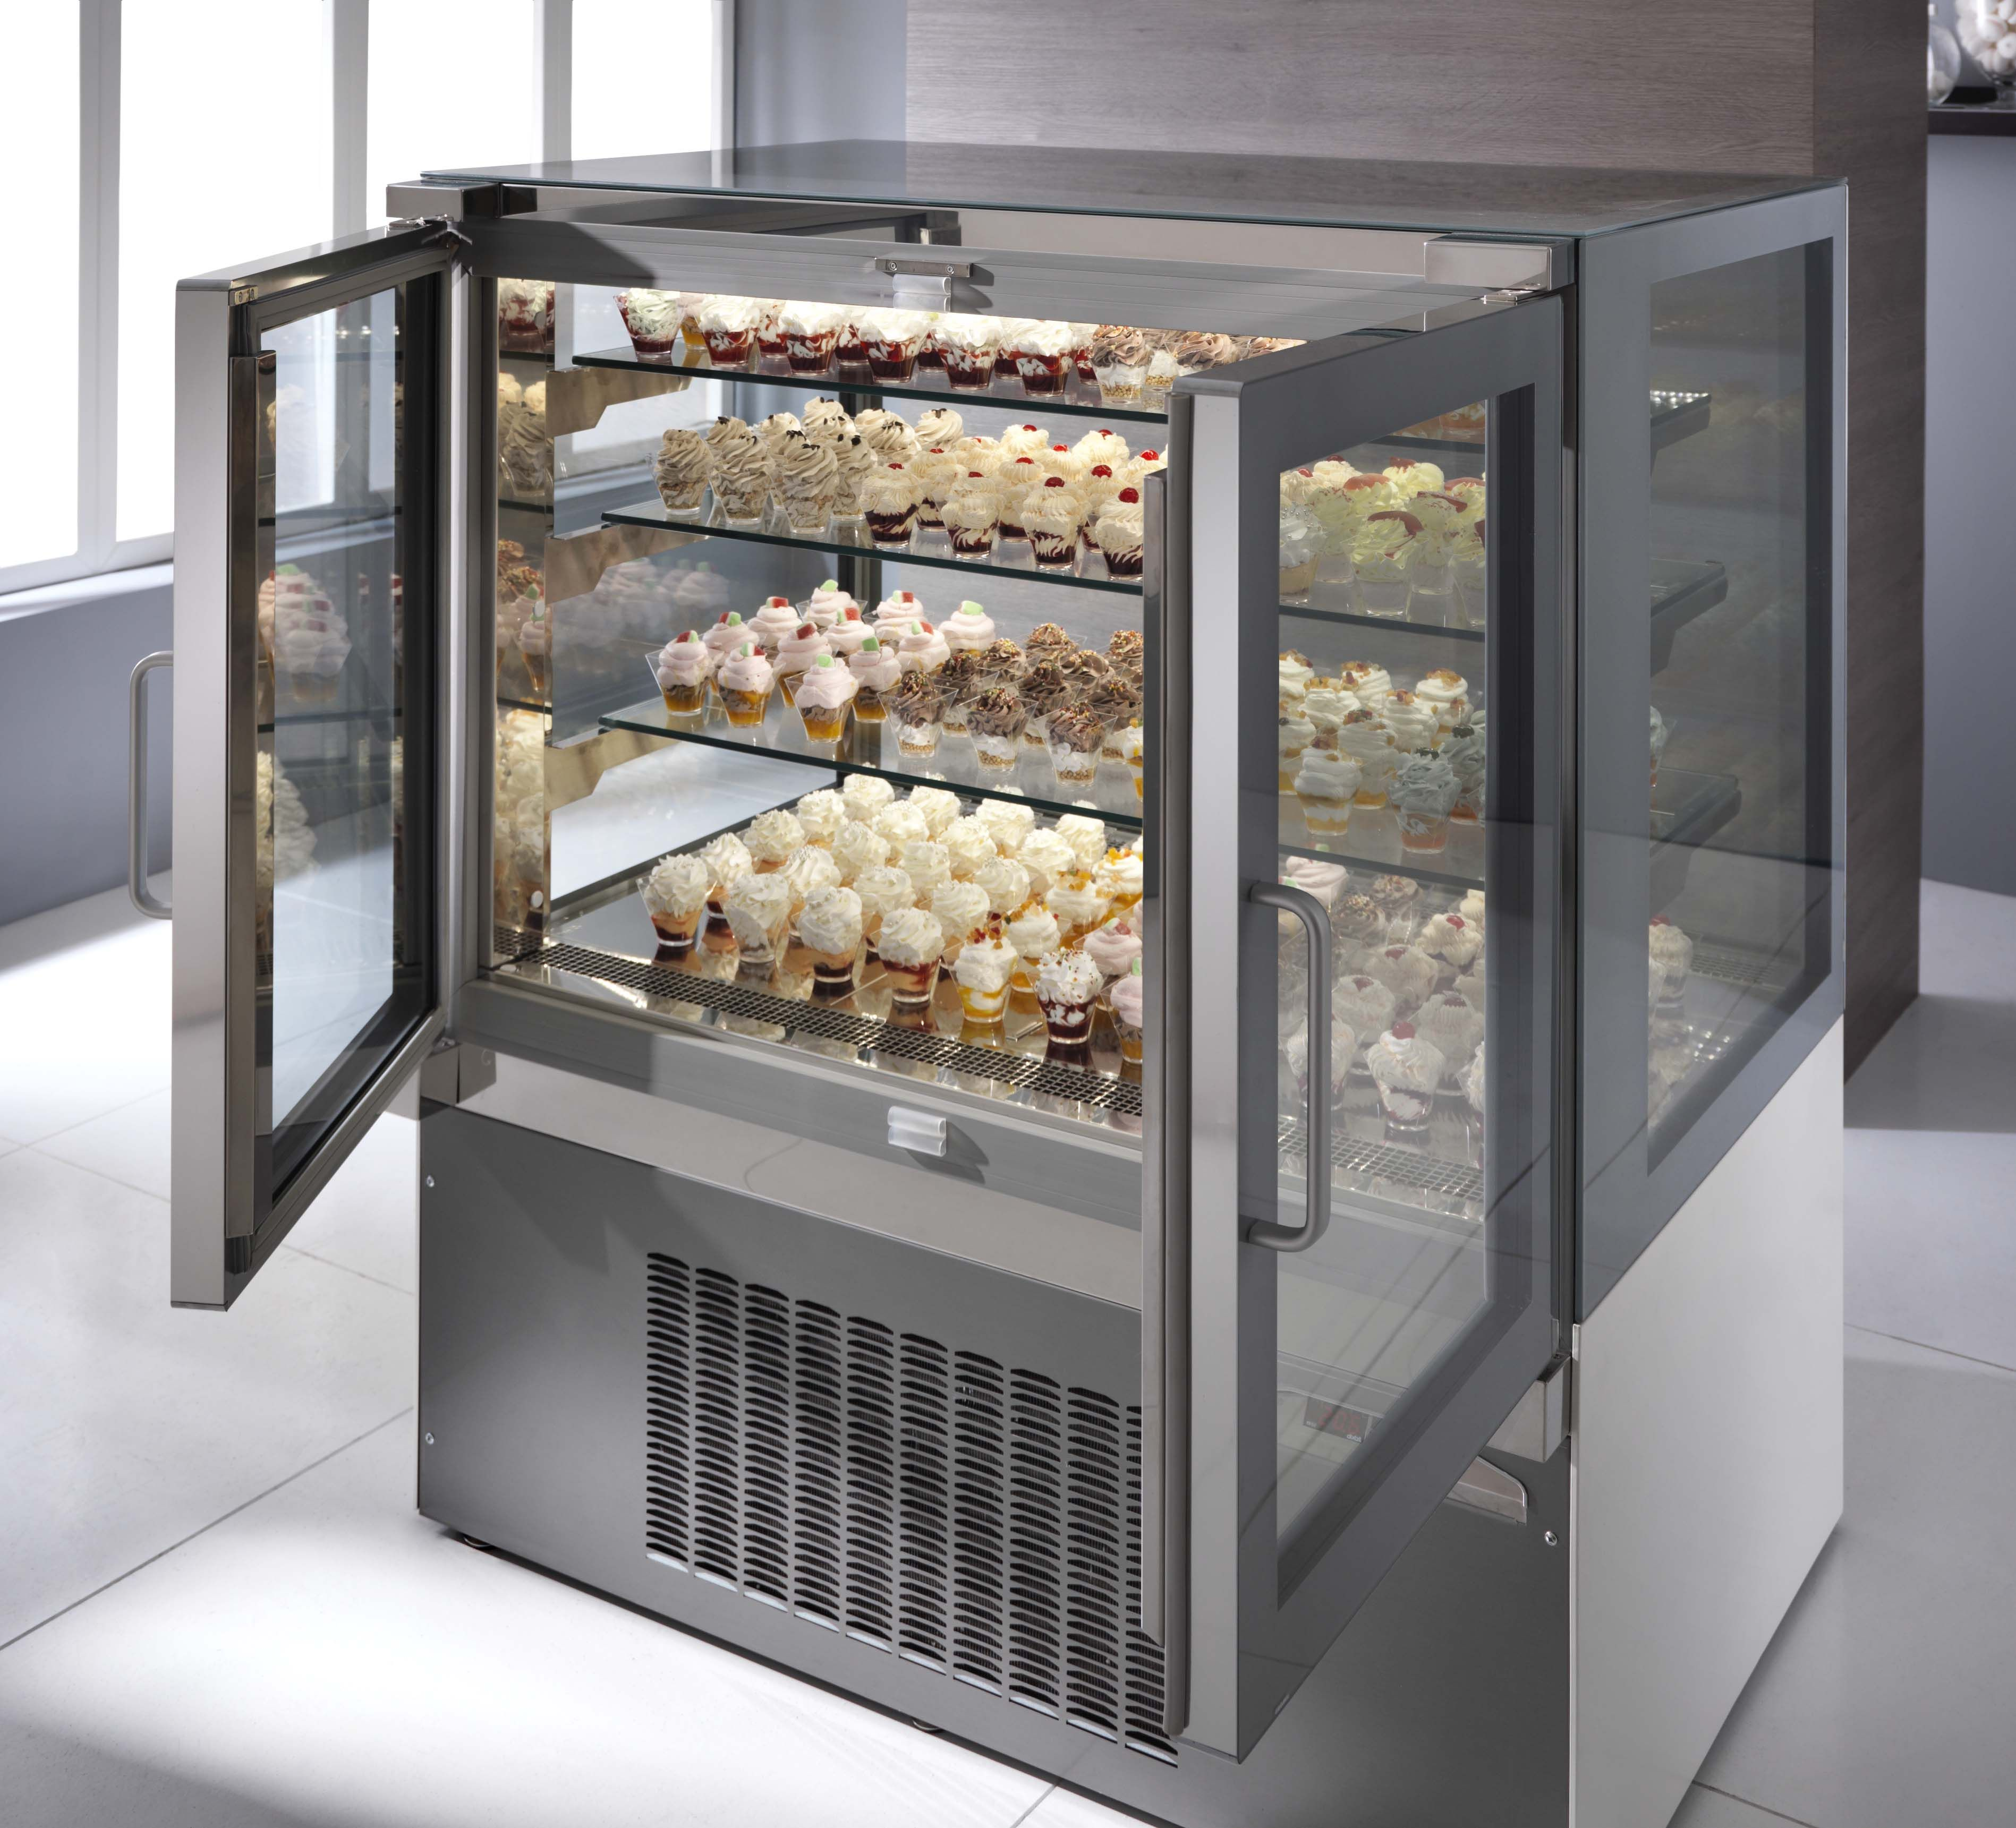 Showcase Pastries Chocolates Cakes Cookies And More In The Pastry Tortuga Display Case By Ciam With Optional 1 Design Display Refrigerator Glass Showcase